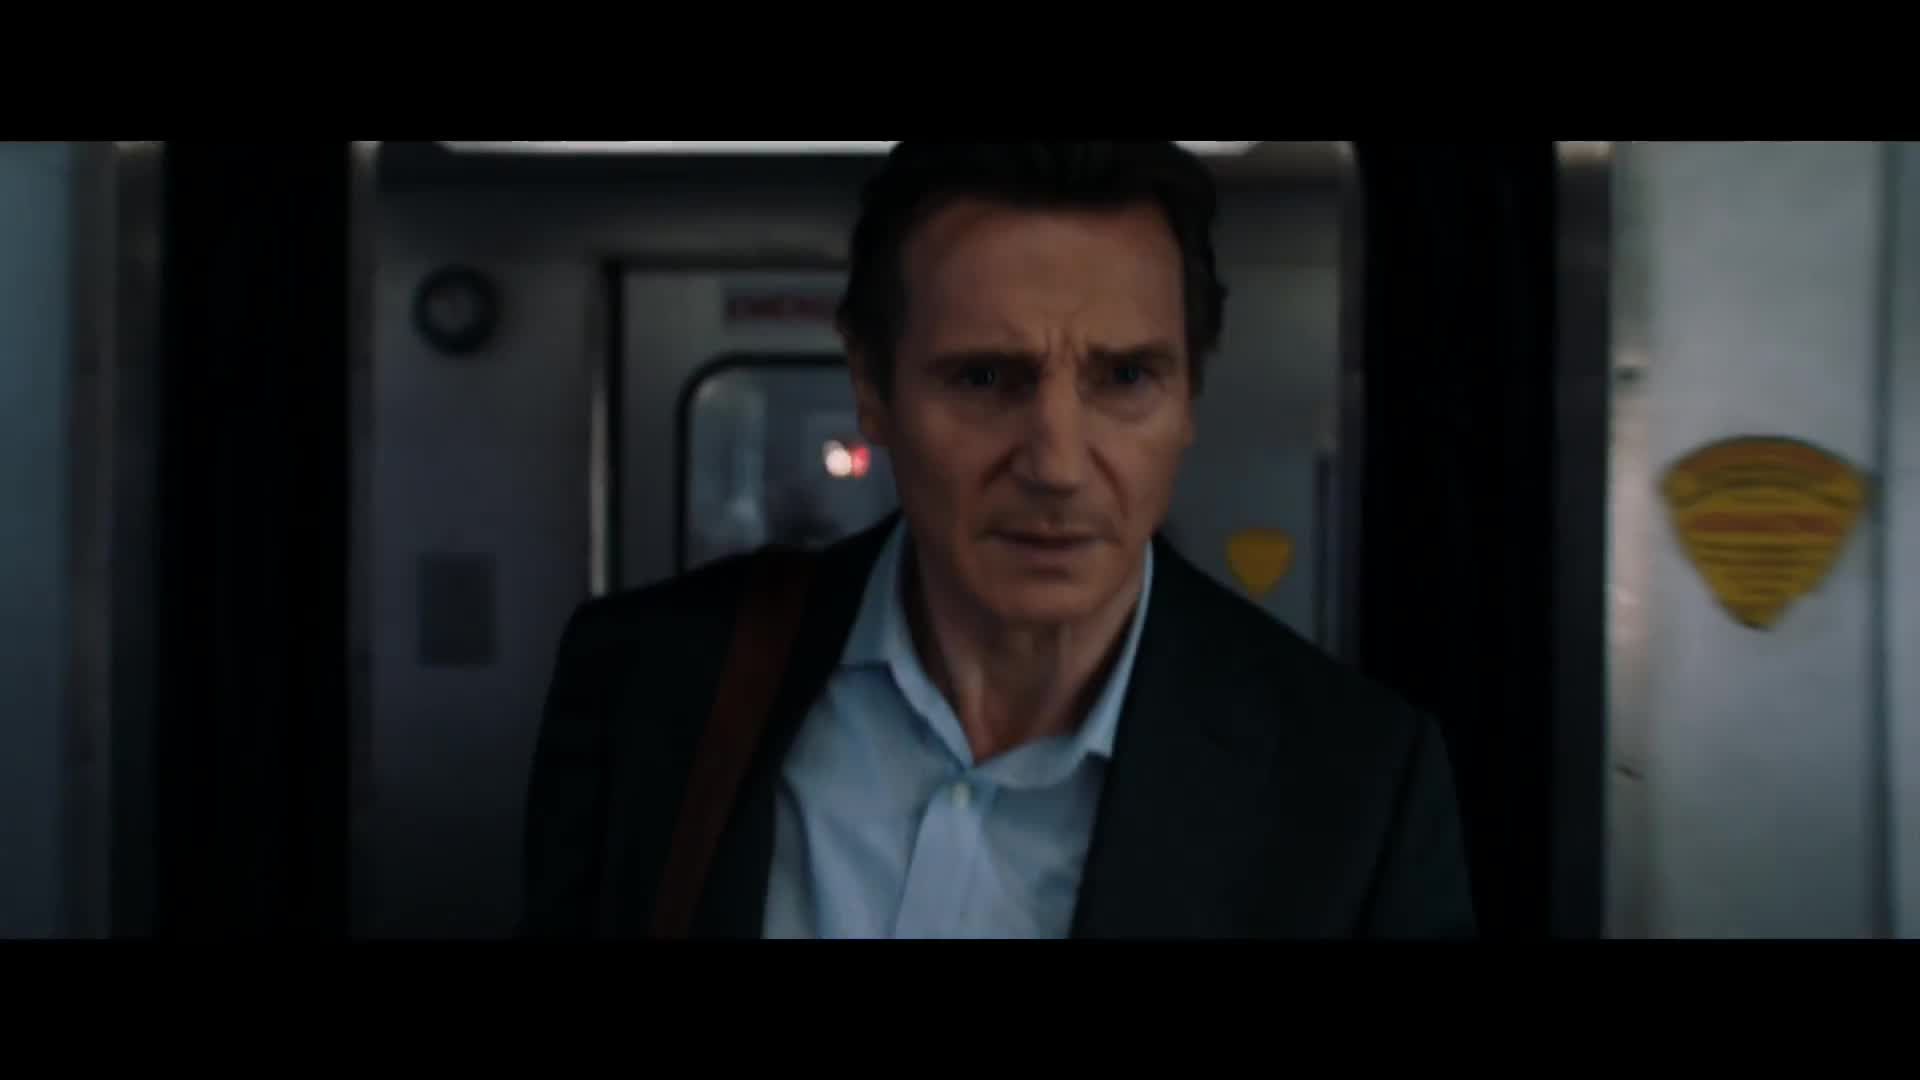 the commuter full movie free online 123movies